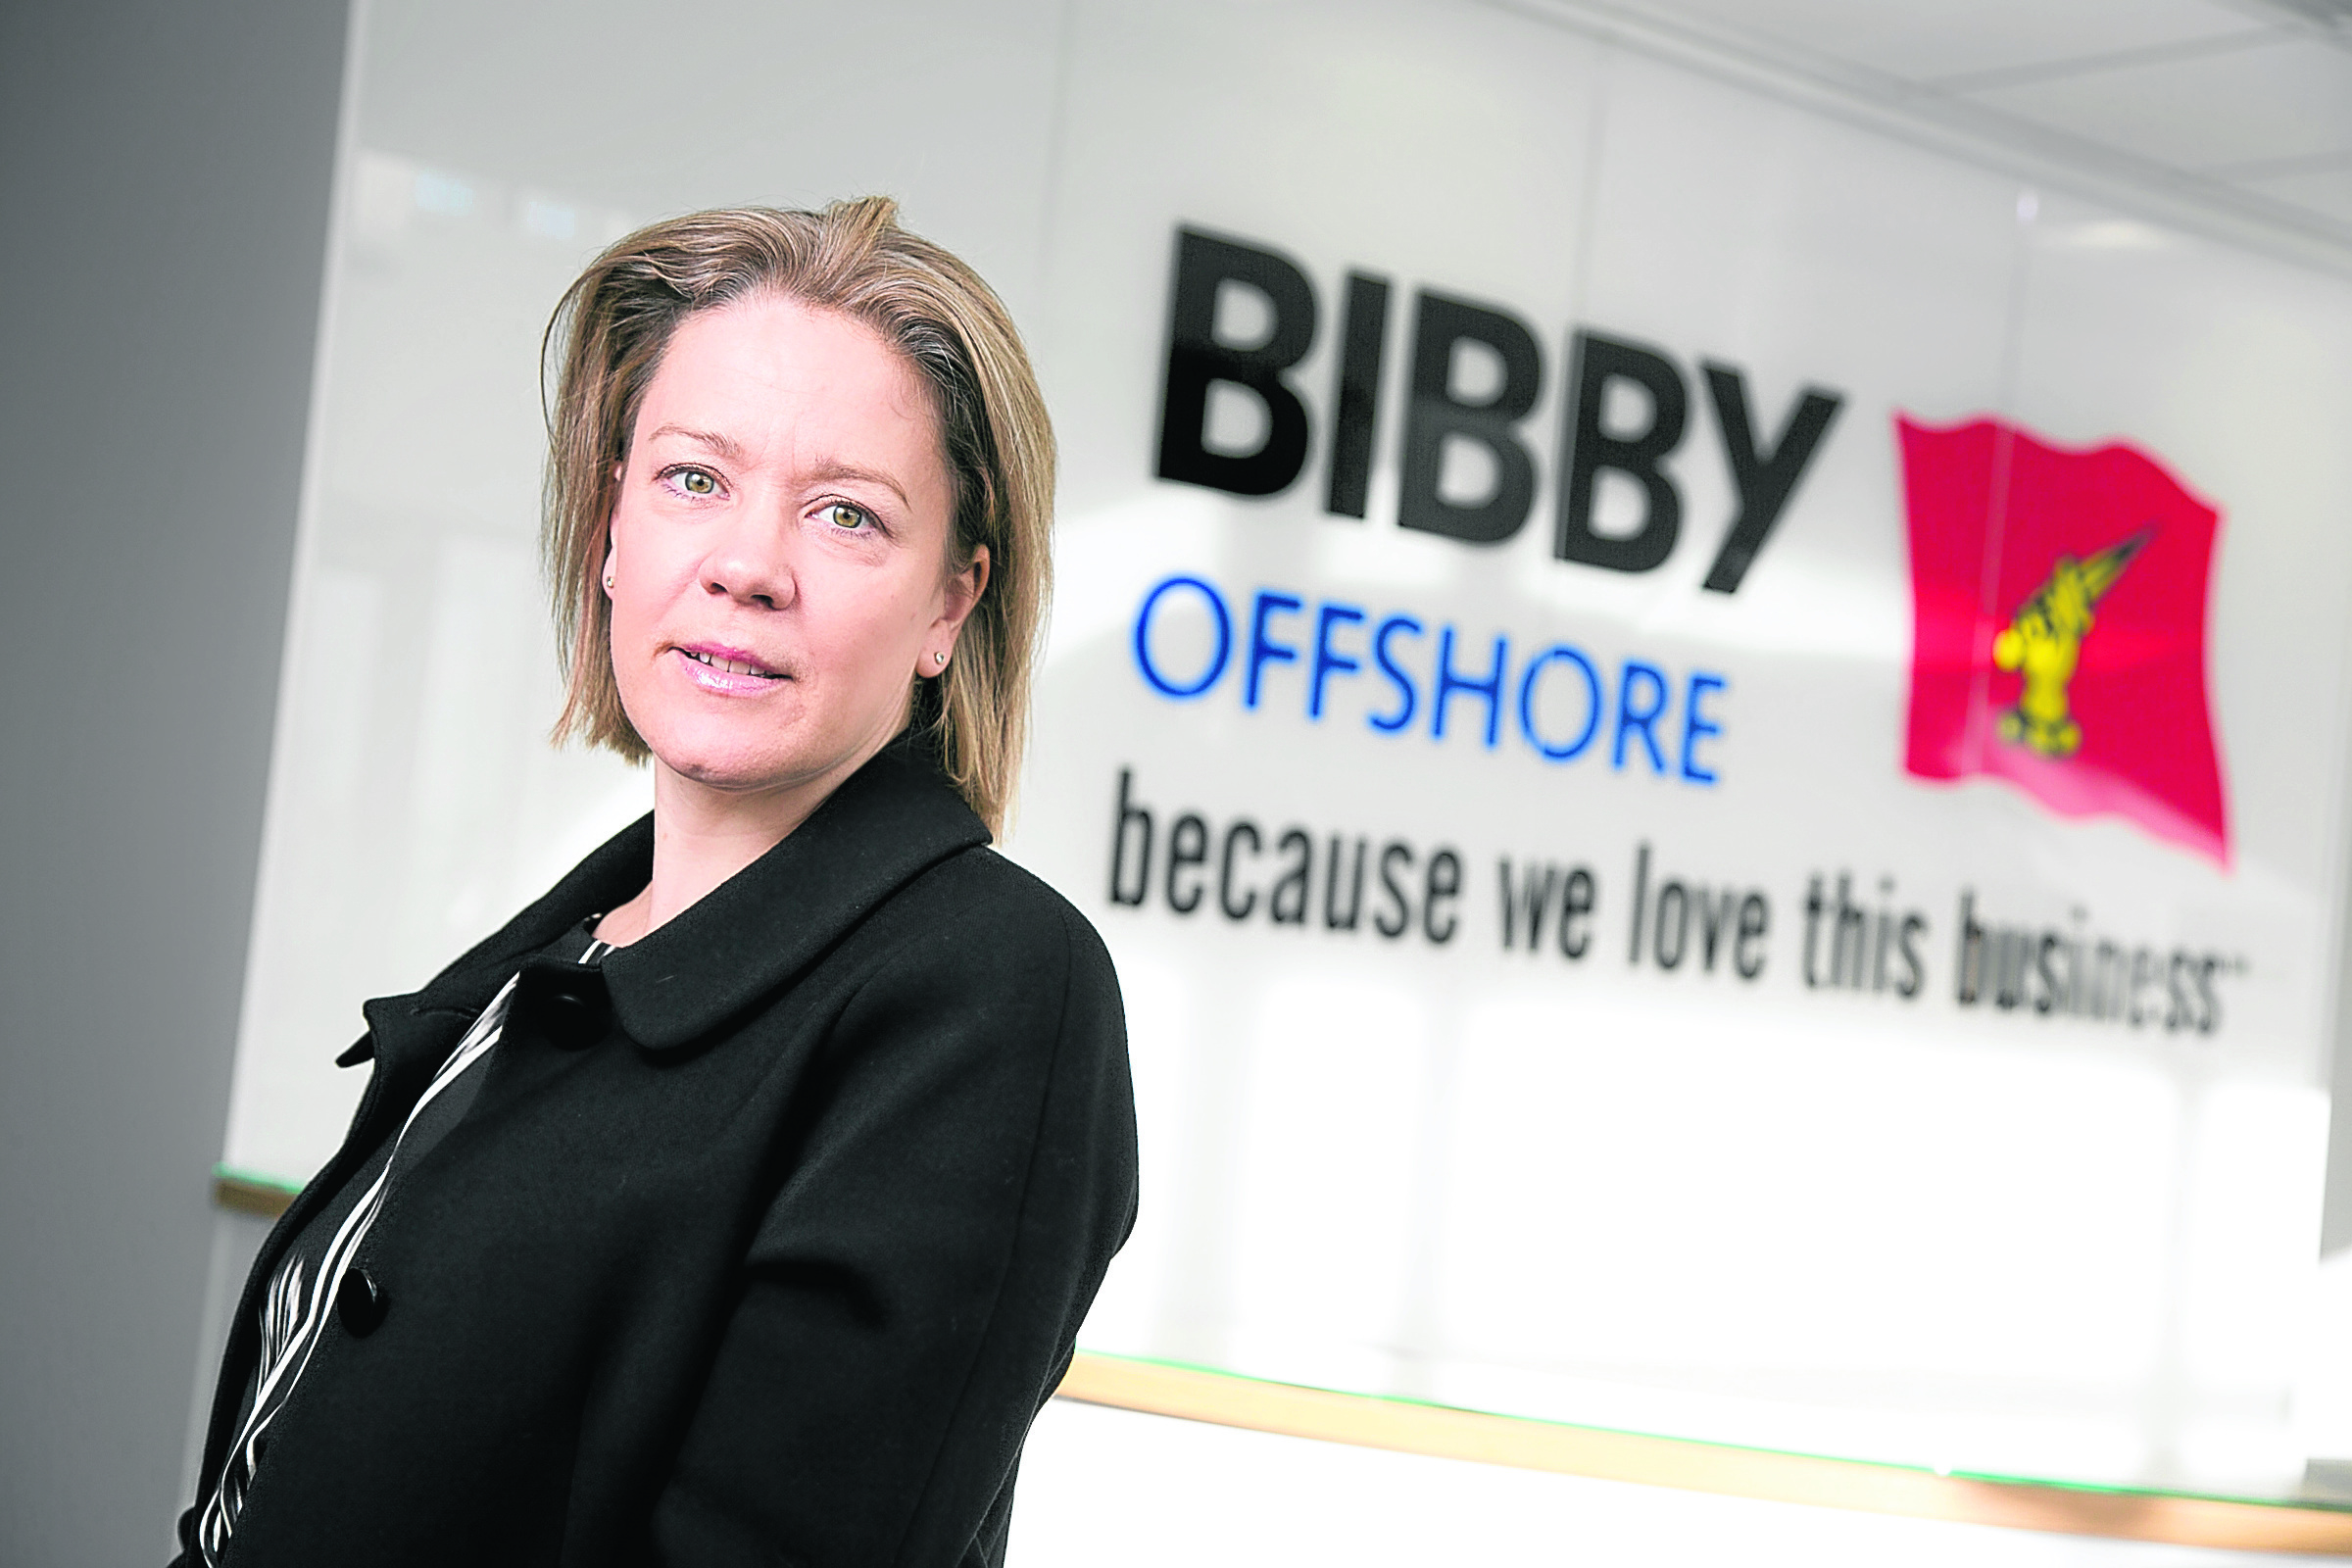 Nicky Etherson, commercial director of Bibby Offshore,